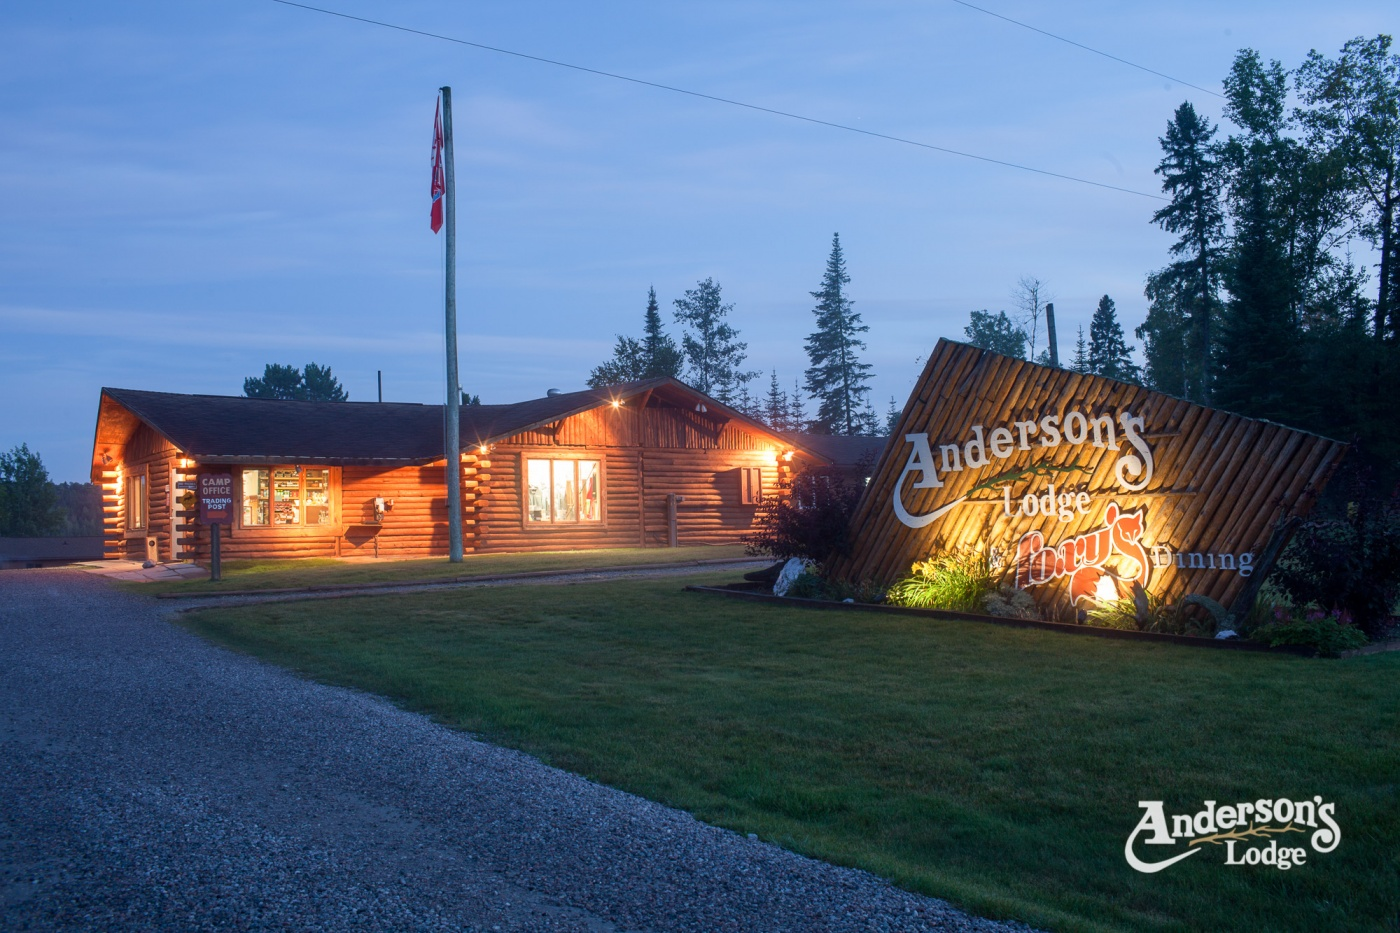 Anderson's Lodge at night